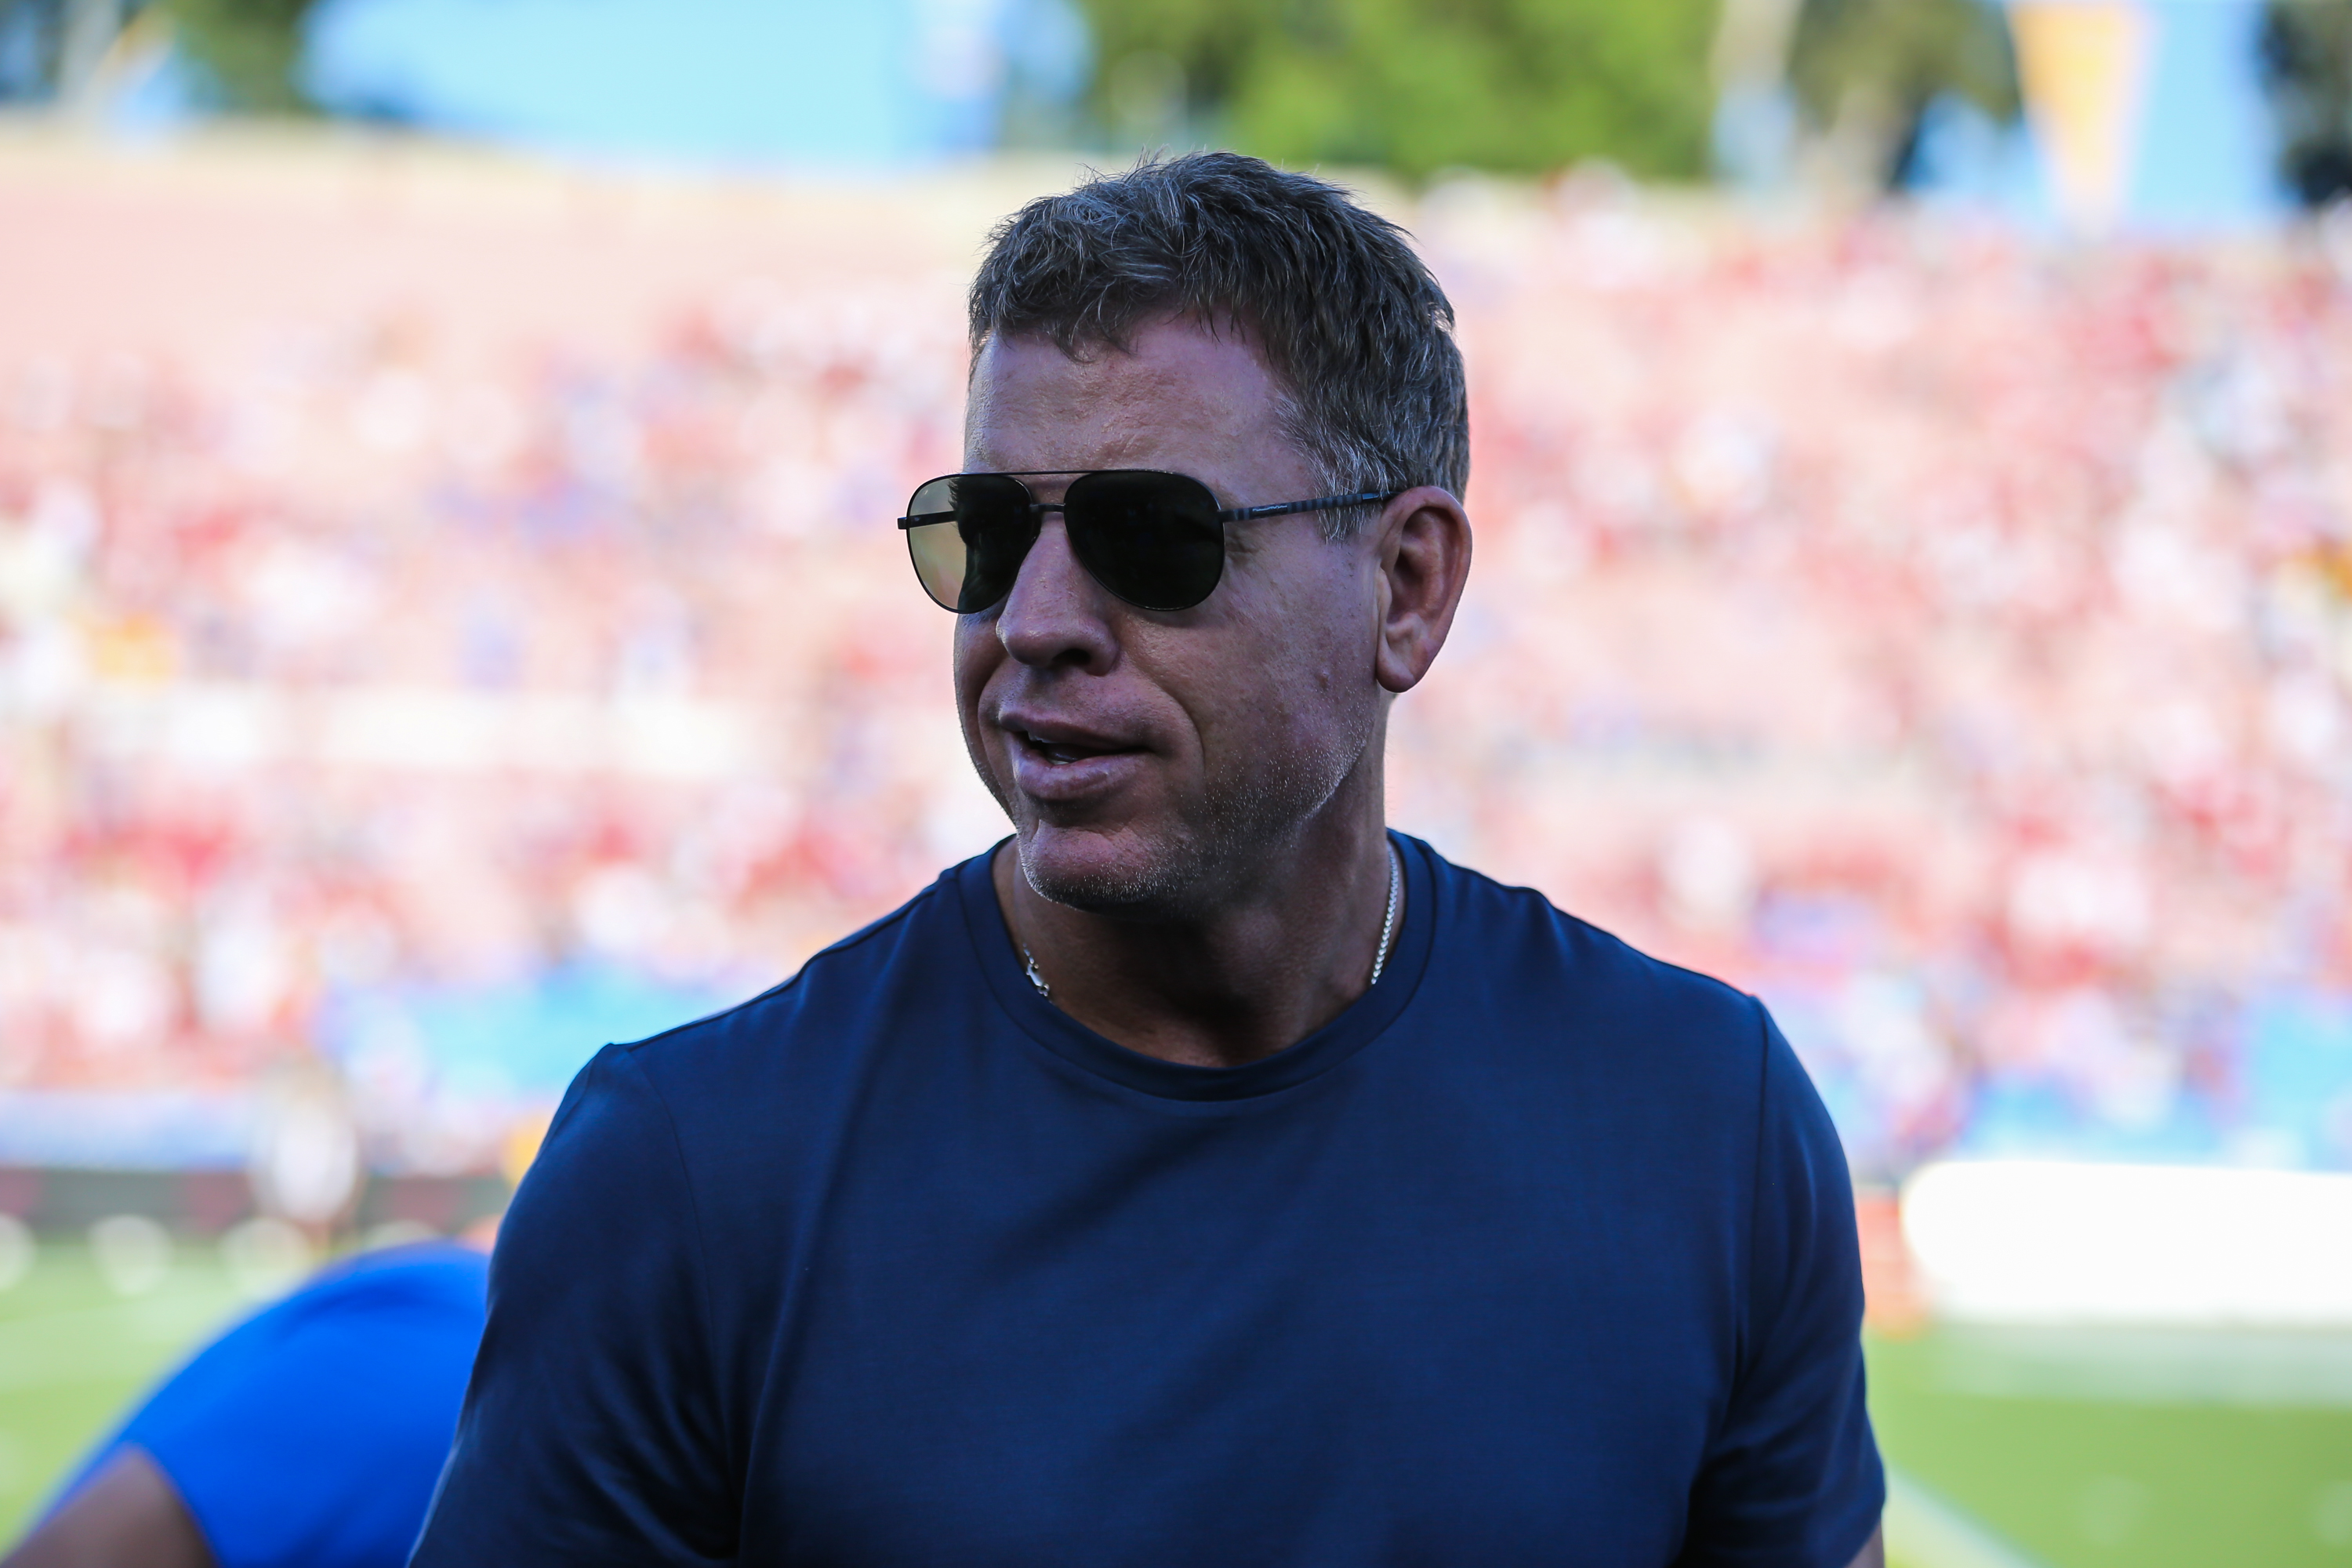 Troy Aikman Gives Advice to Young Athletes: Your Finance Guy 'Is More Important Than Your Agent'